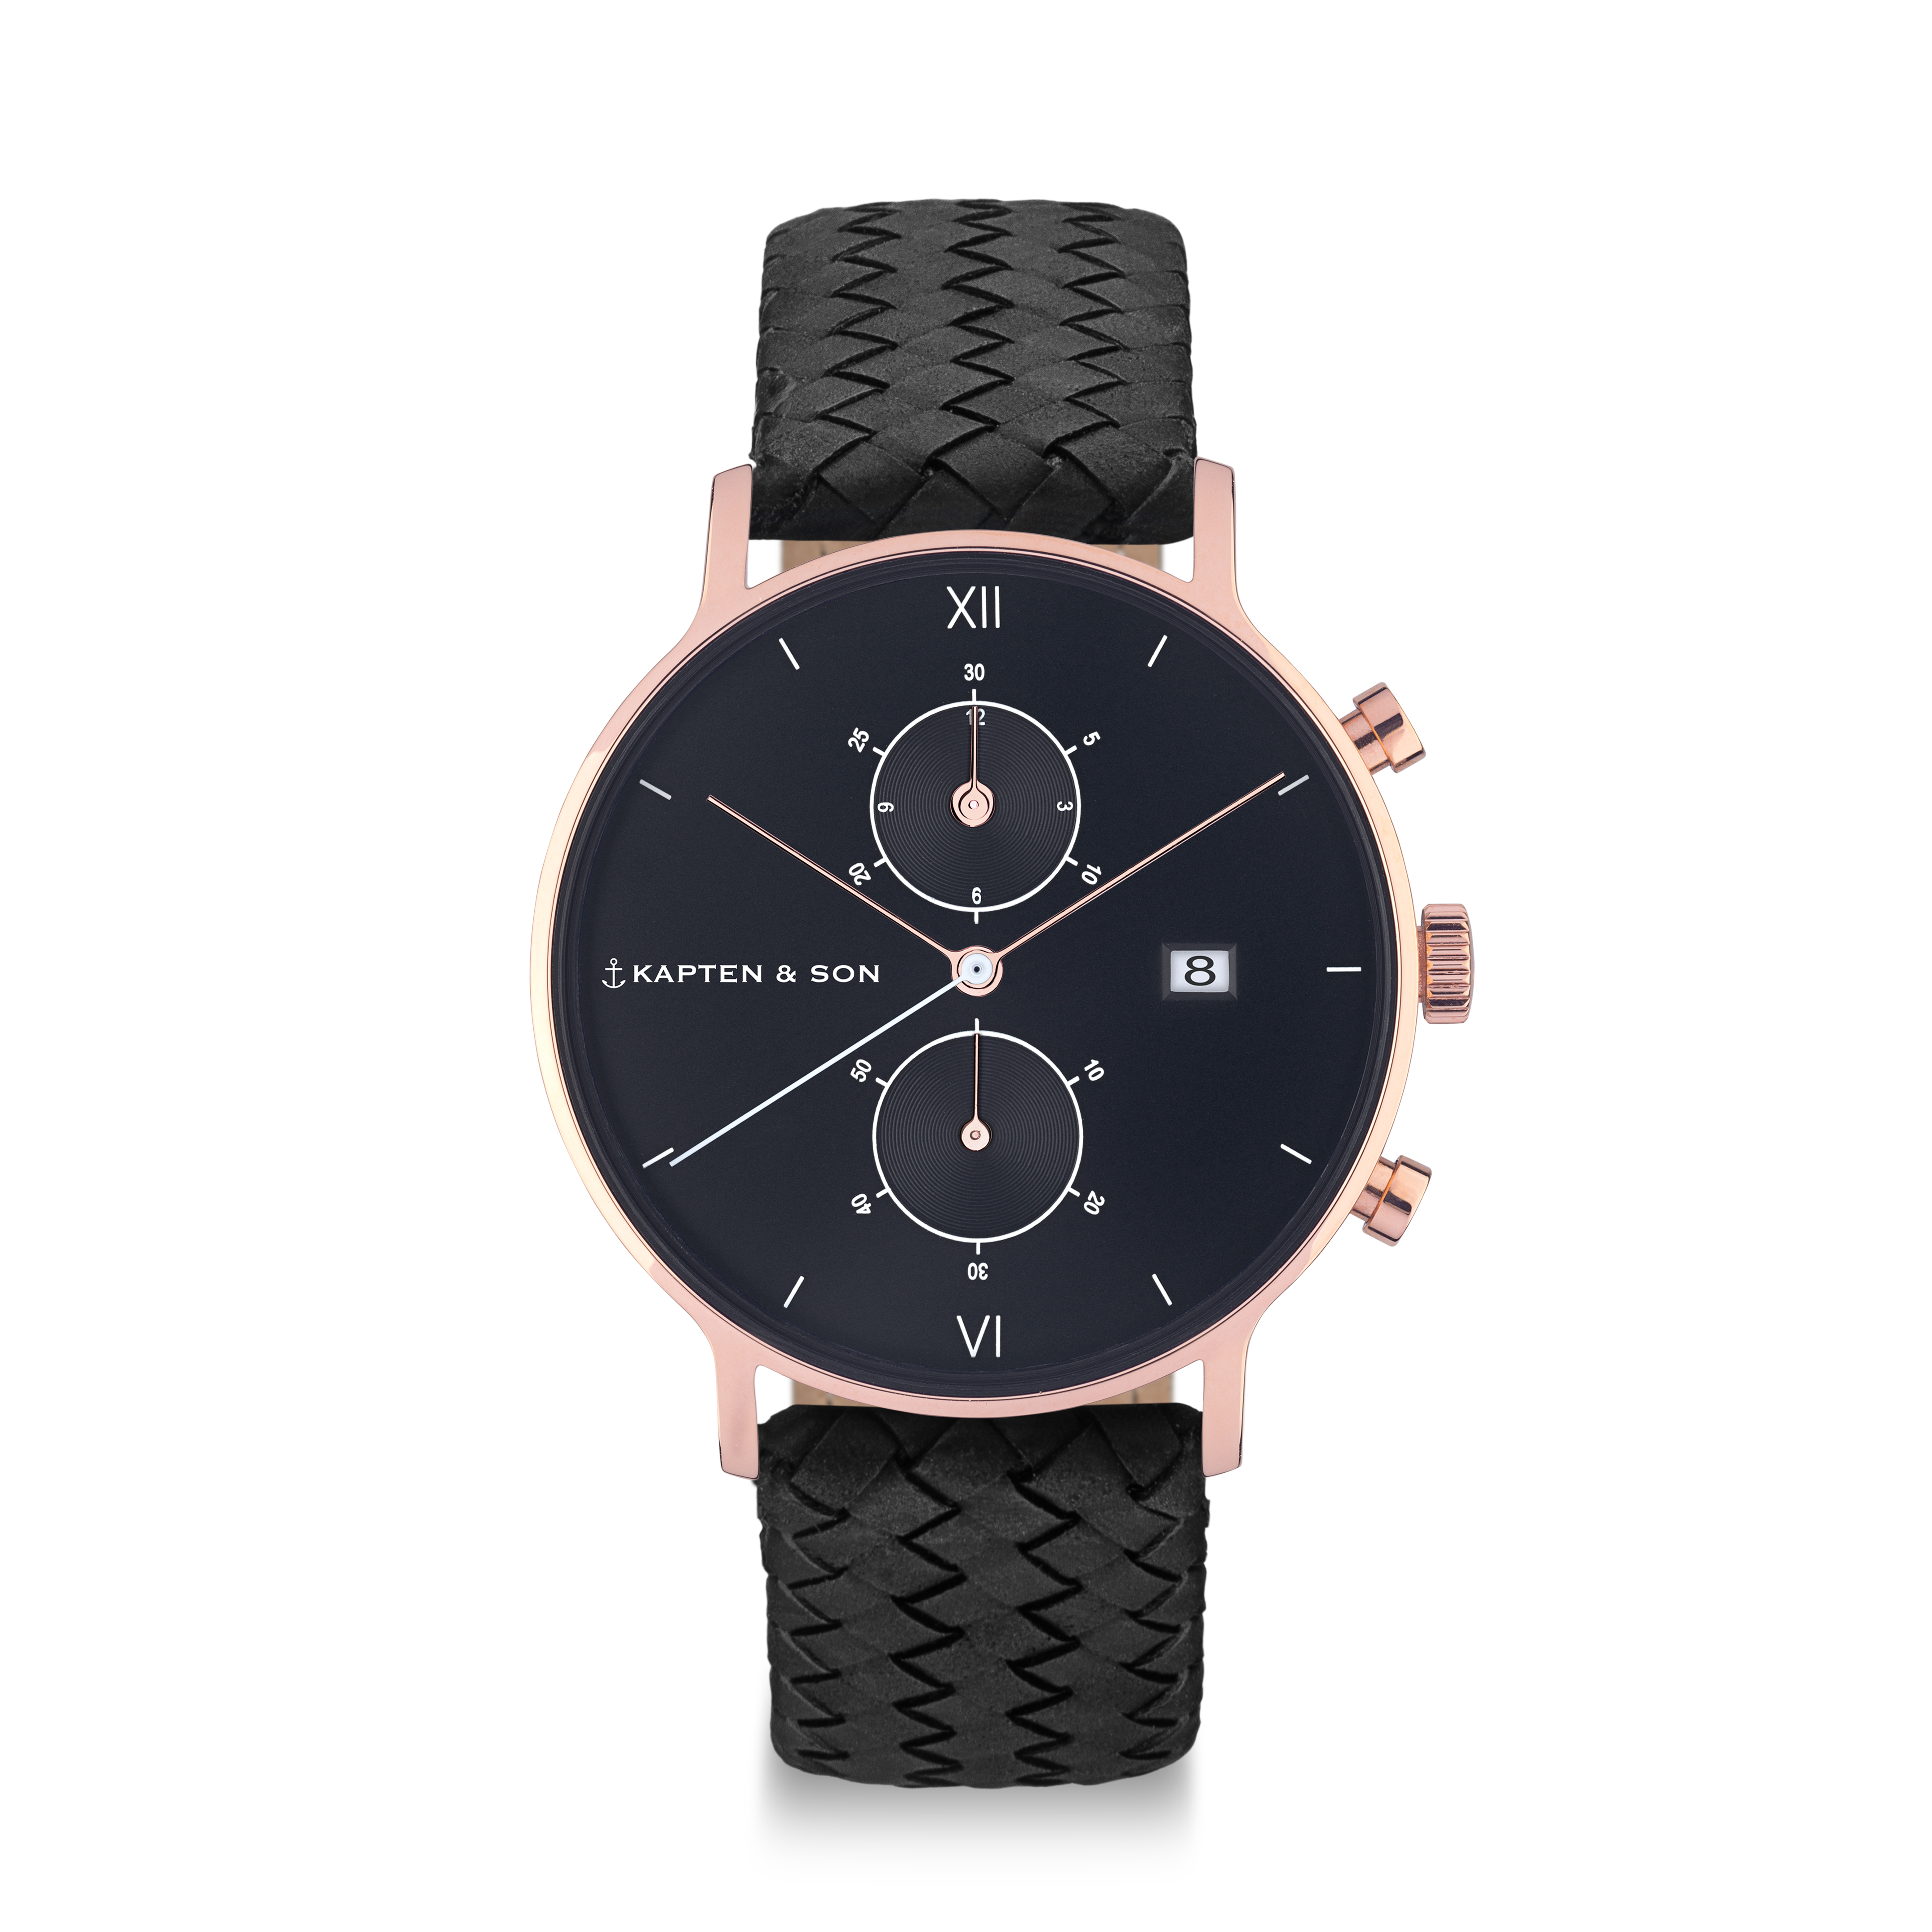 Montre chrono All Black - Kapten & Son & Heureux comme un Prince